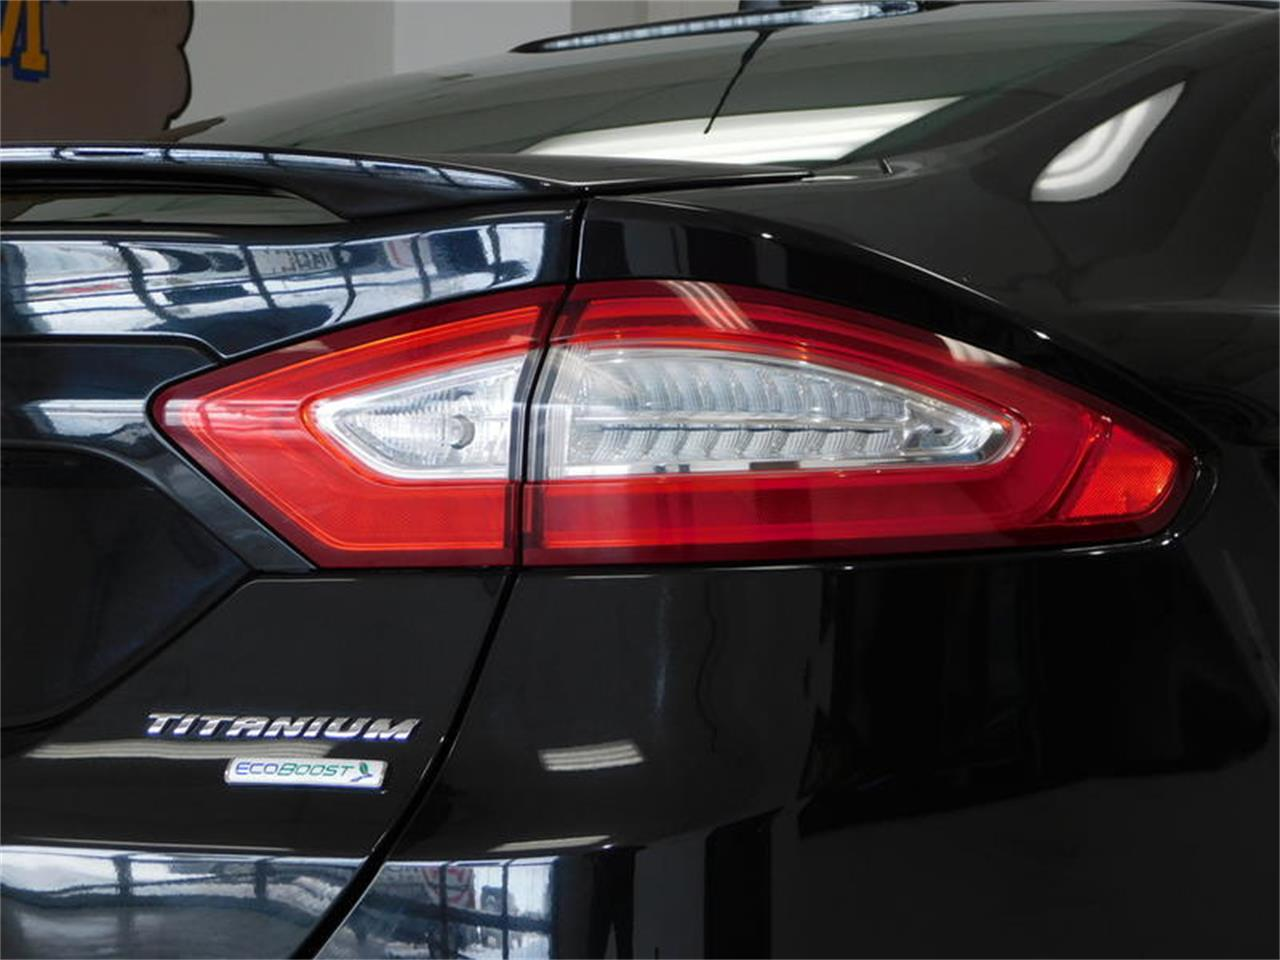 2015 Ford Fusion (CC-1190589) for sale in Hamburg, New York